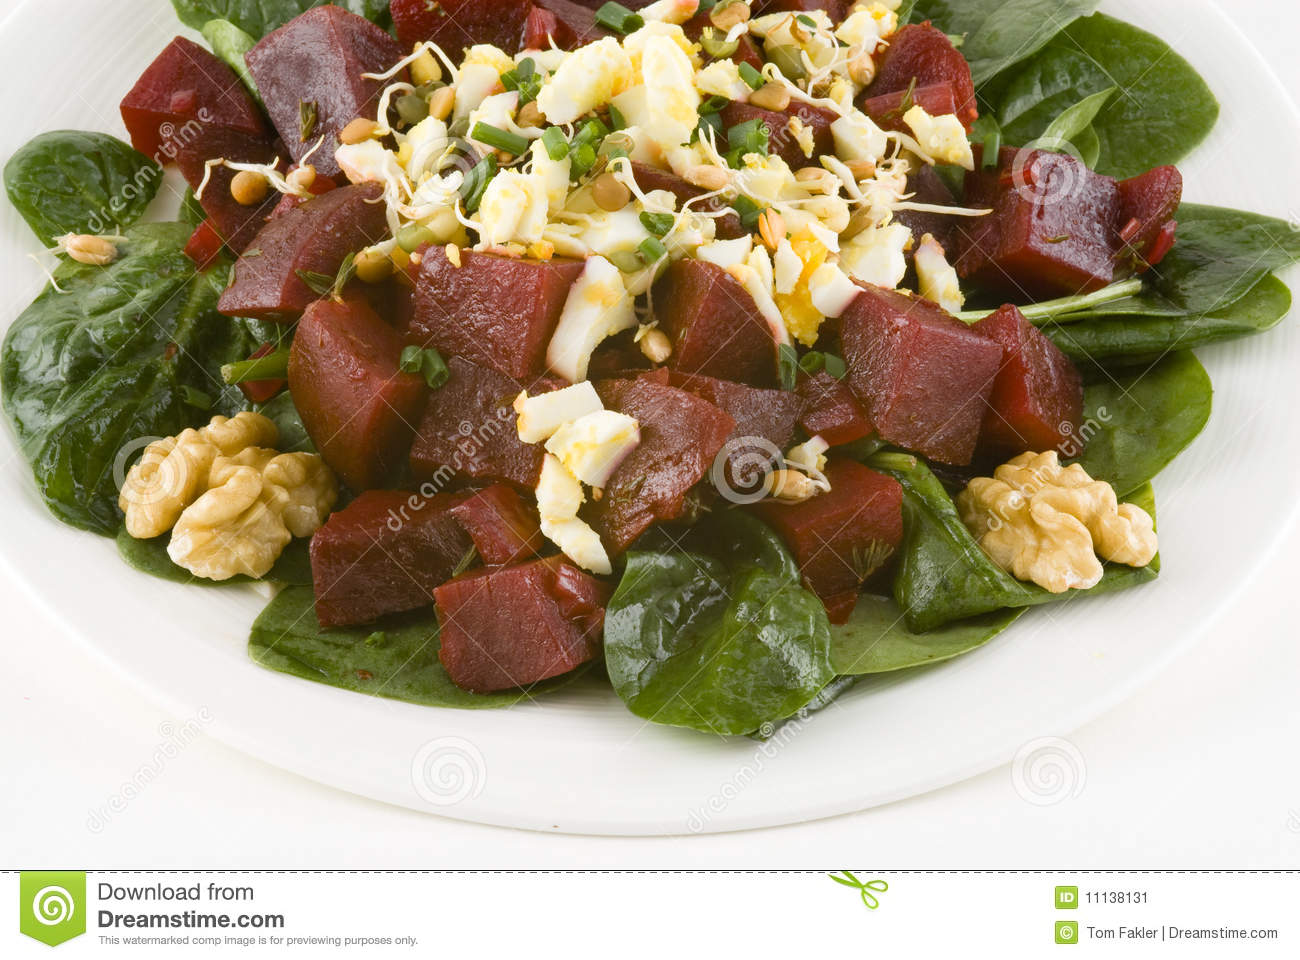 Salad With Beets On Spinach Stock Image - Image: 11138131